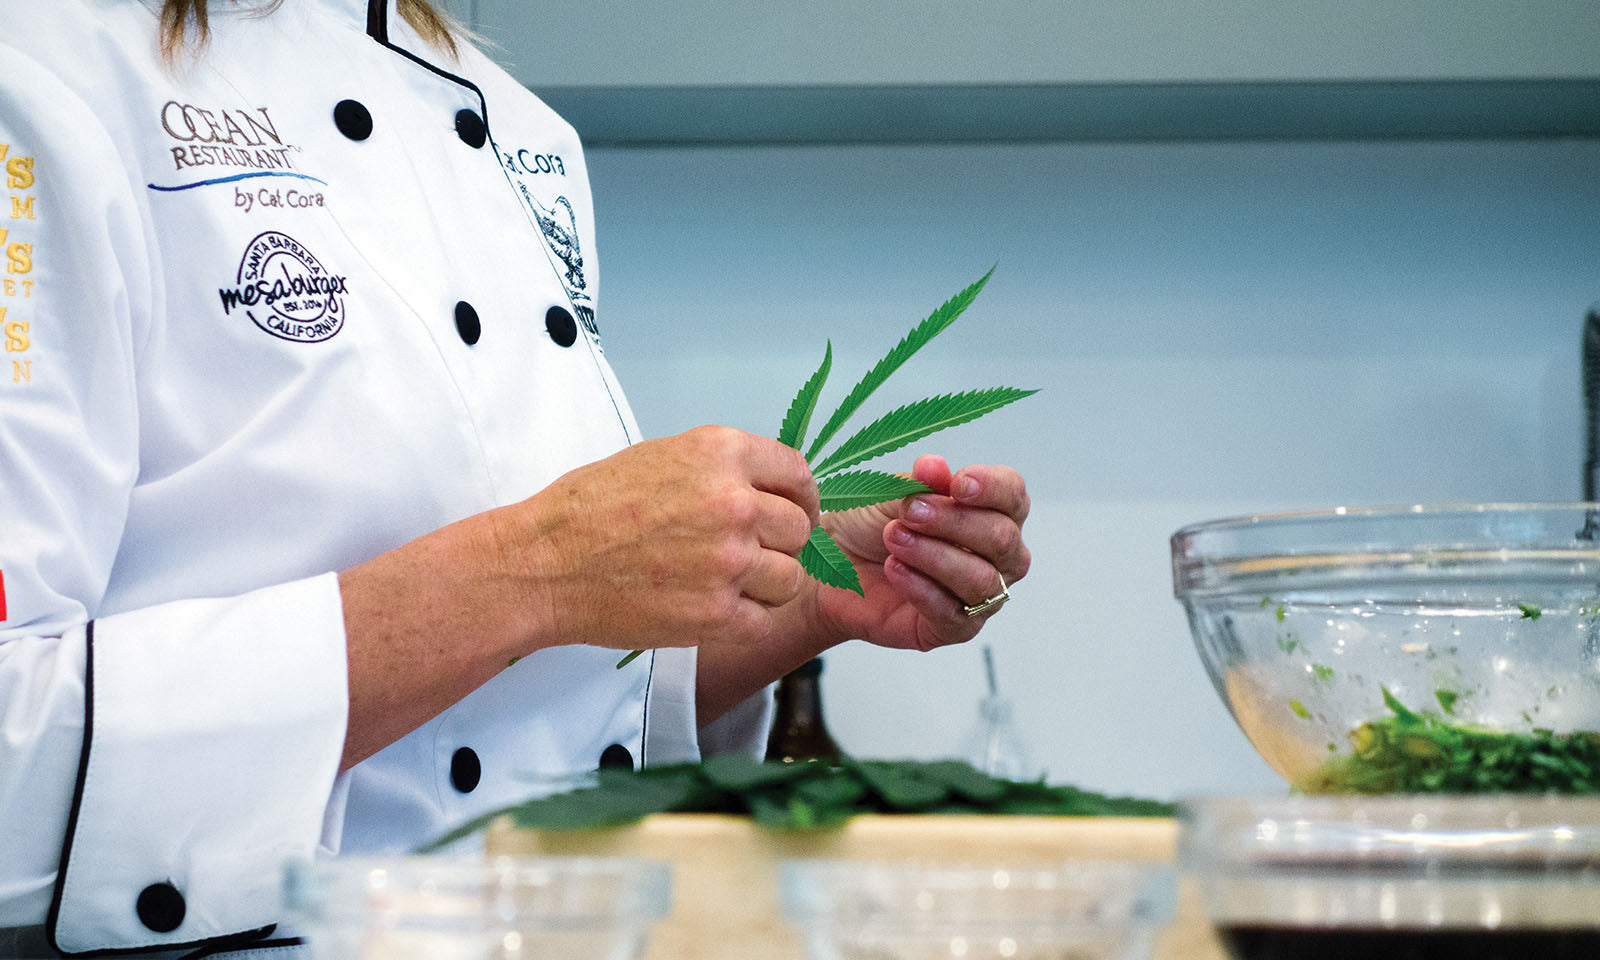 Cat Cora, cooking with cannabis